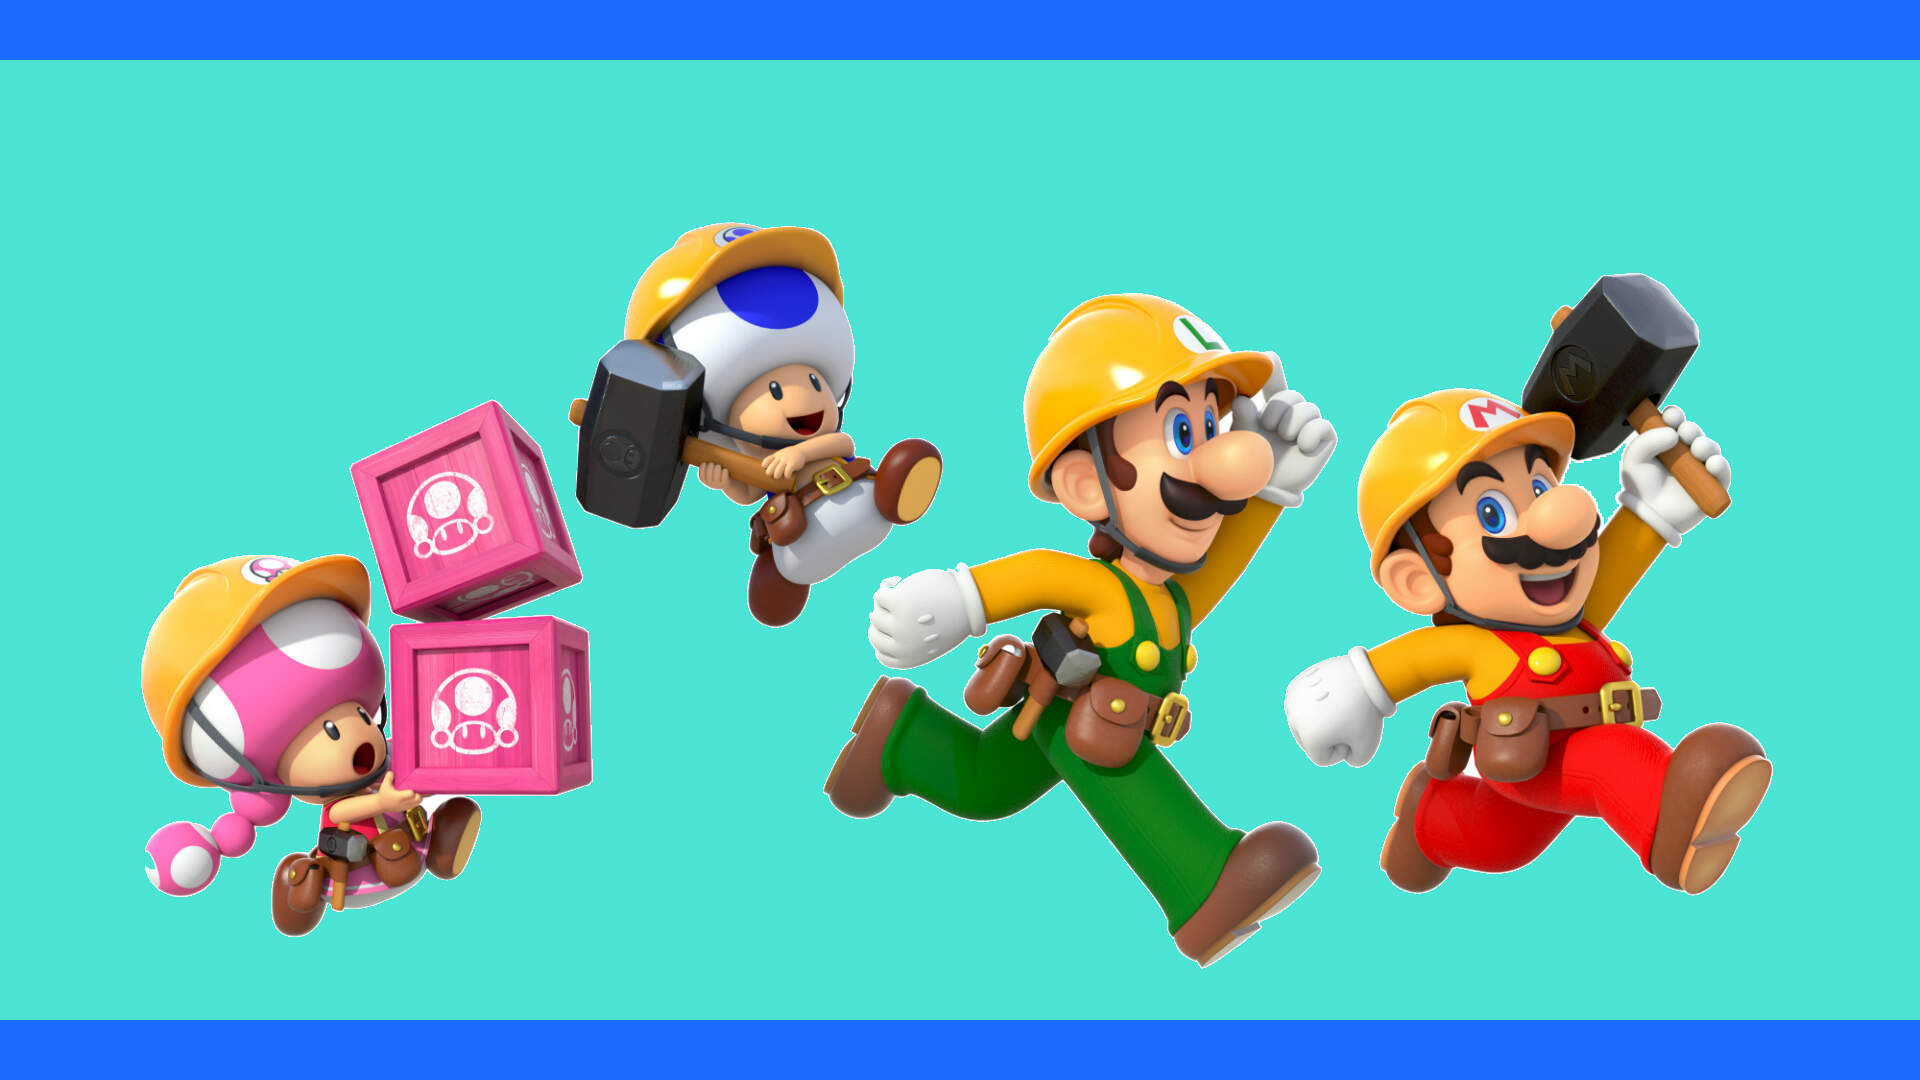 Super Mario Maker 2 Puts Mario at the Mercy of an Anti-Union Boss